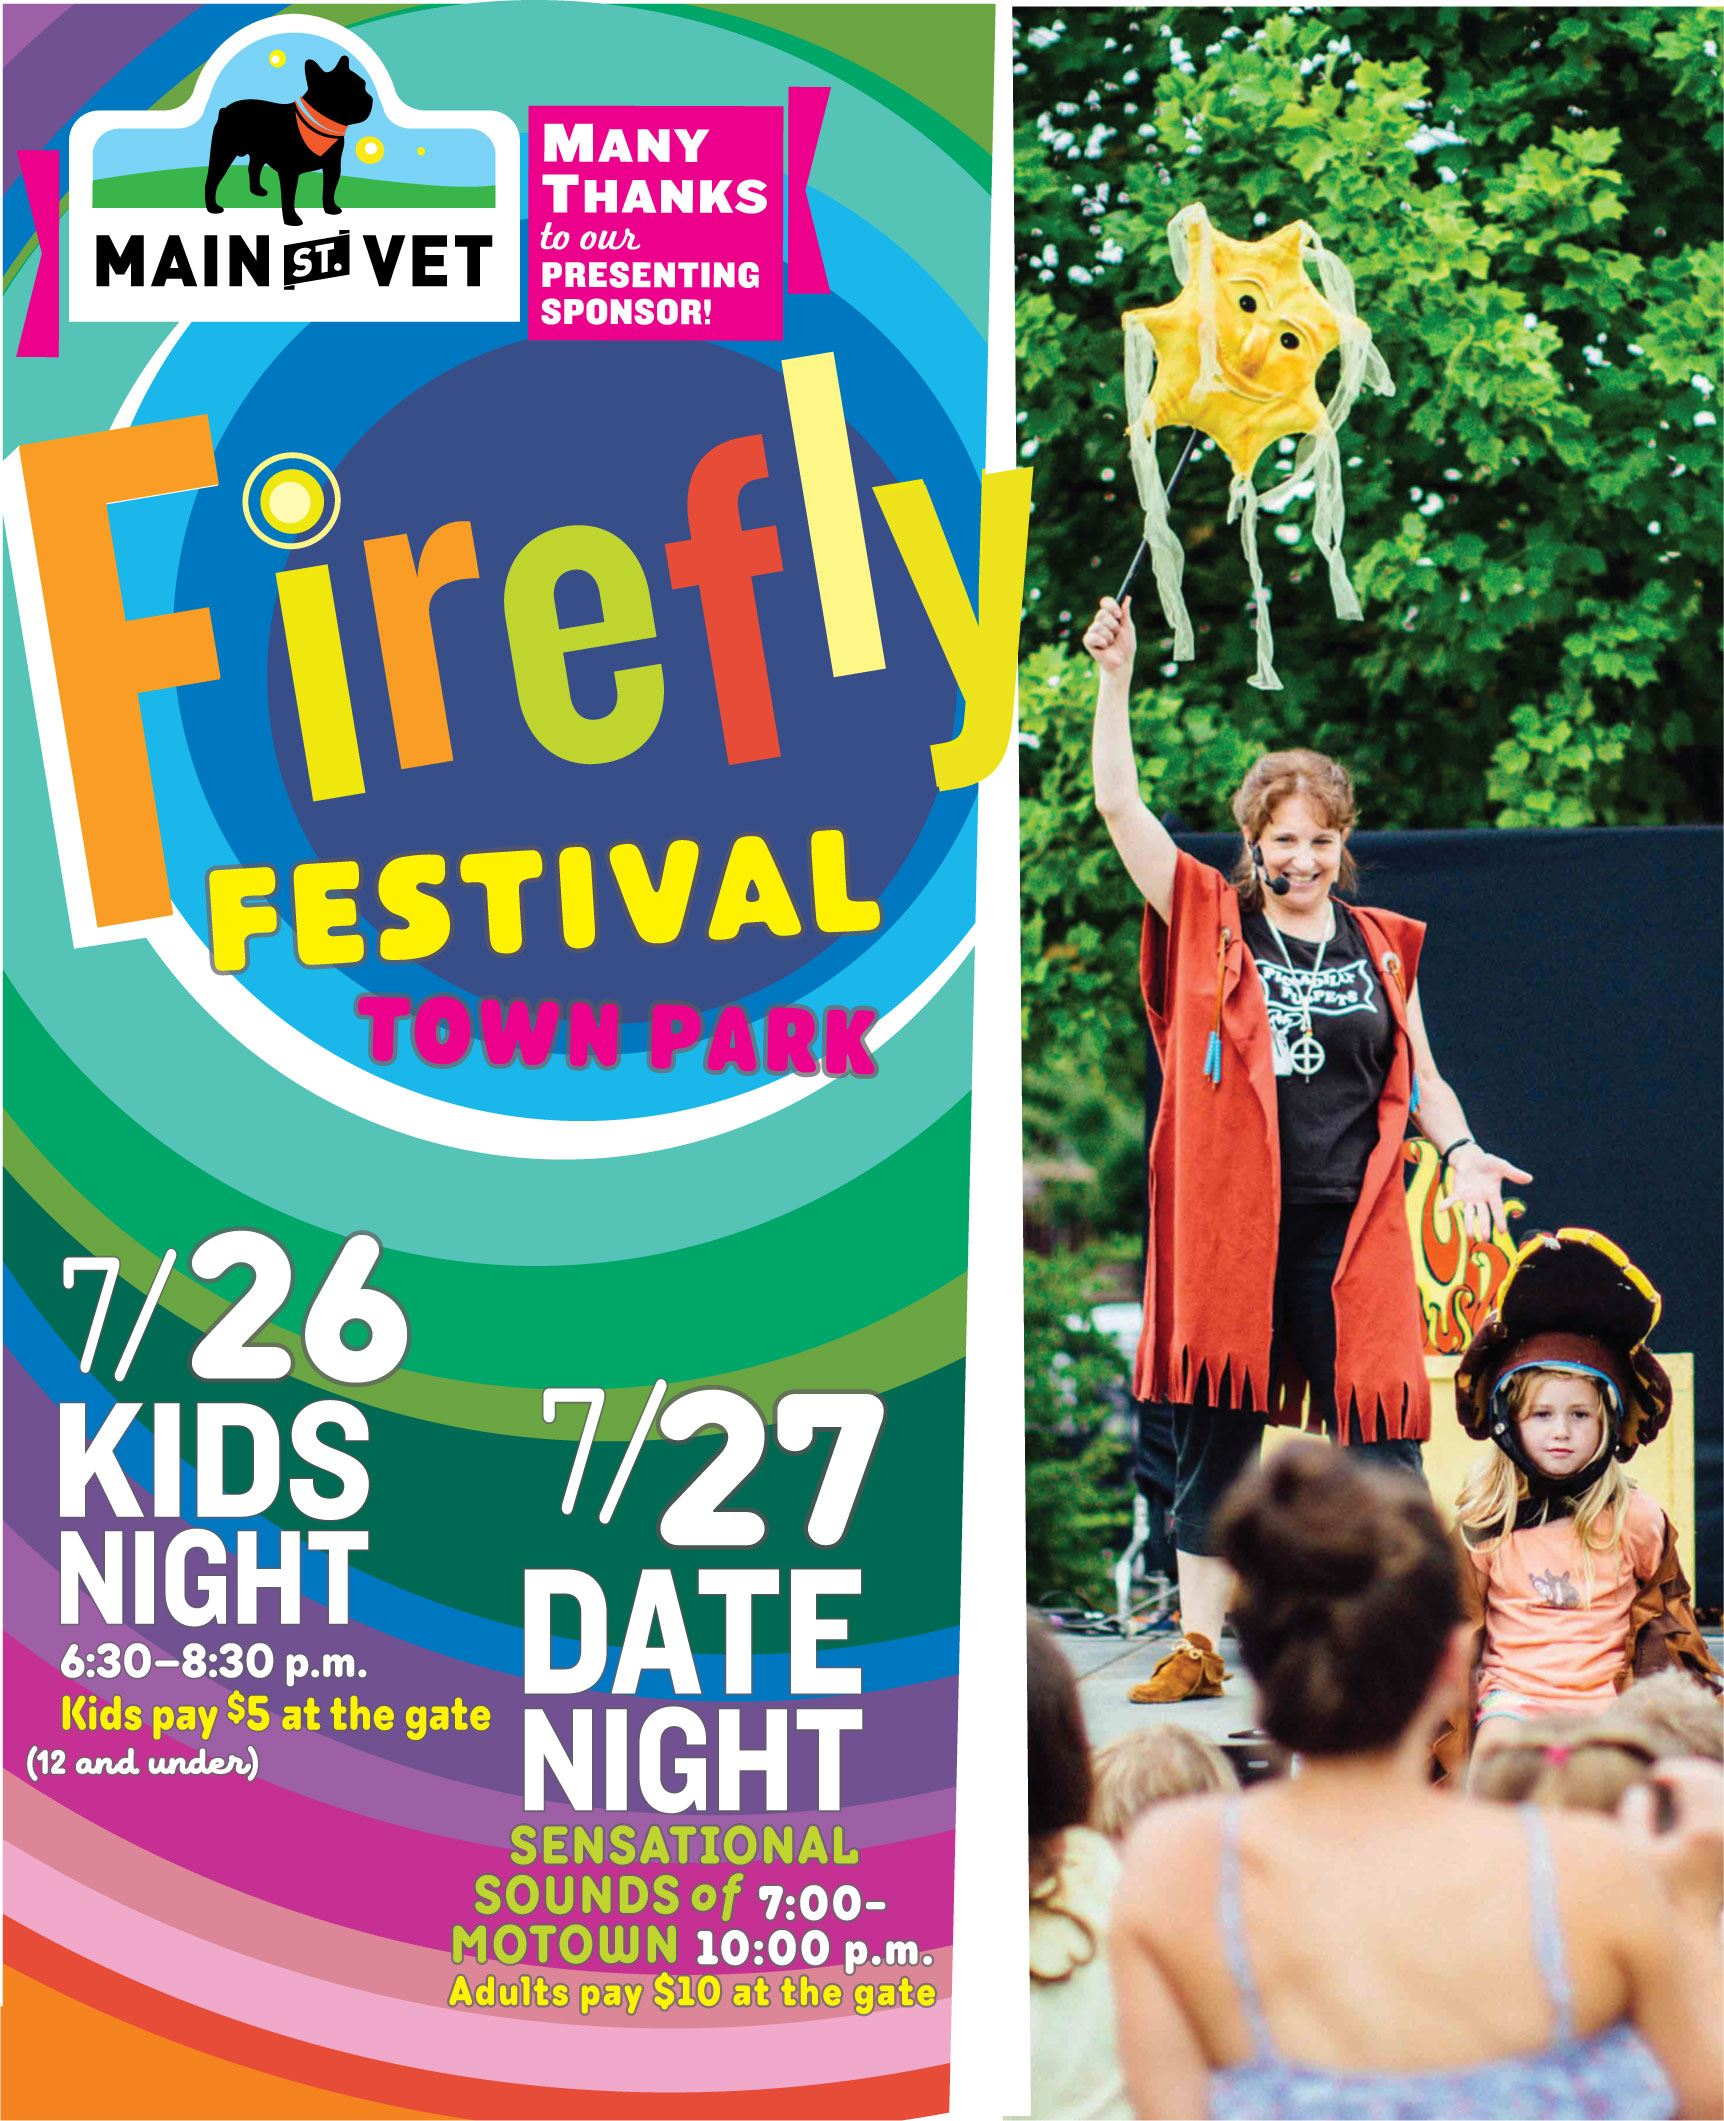 Firefly Festival logo and photo of storyteller with kids